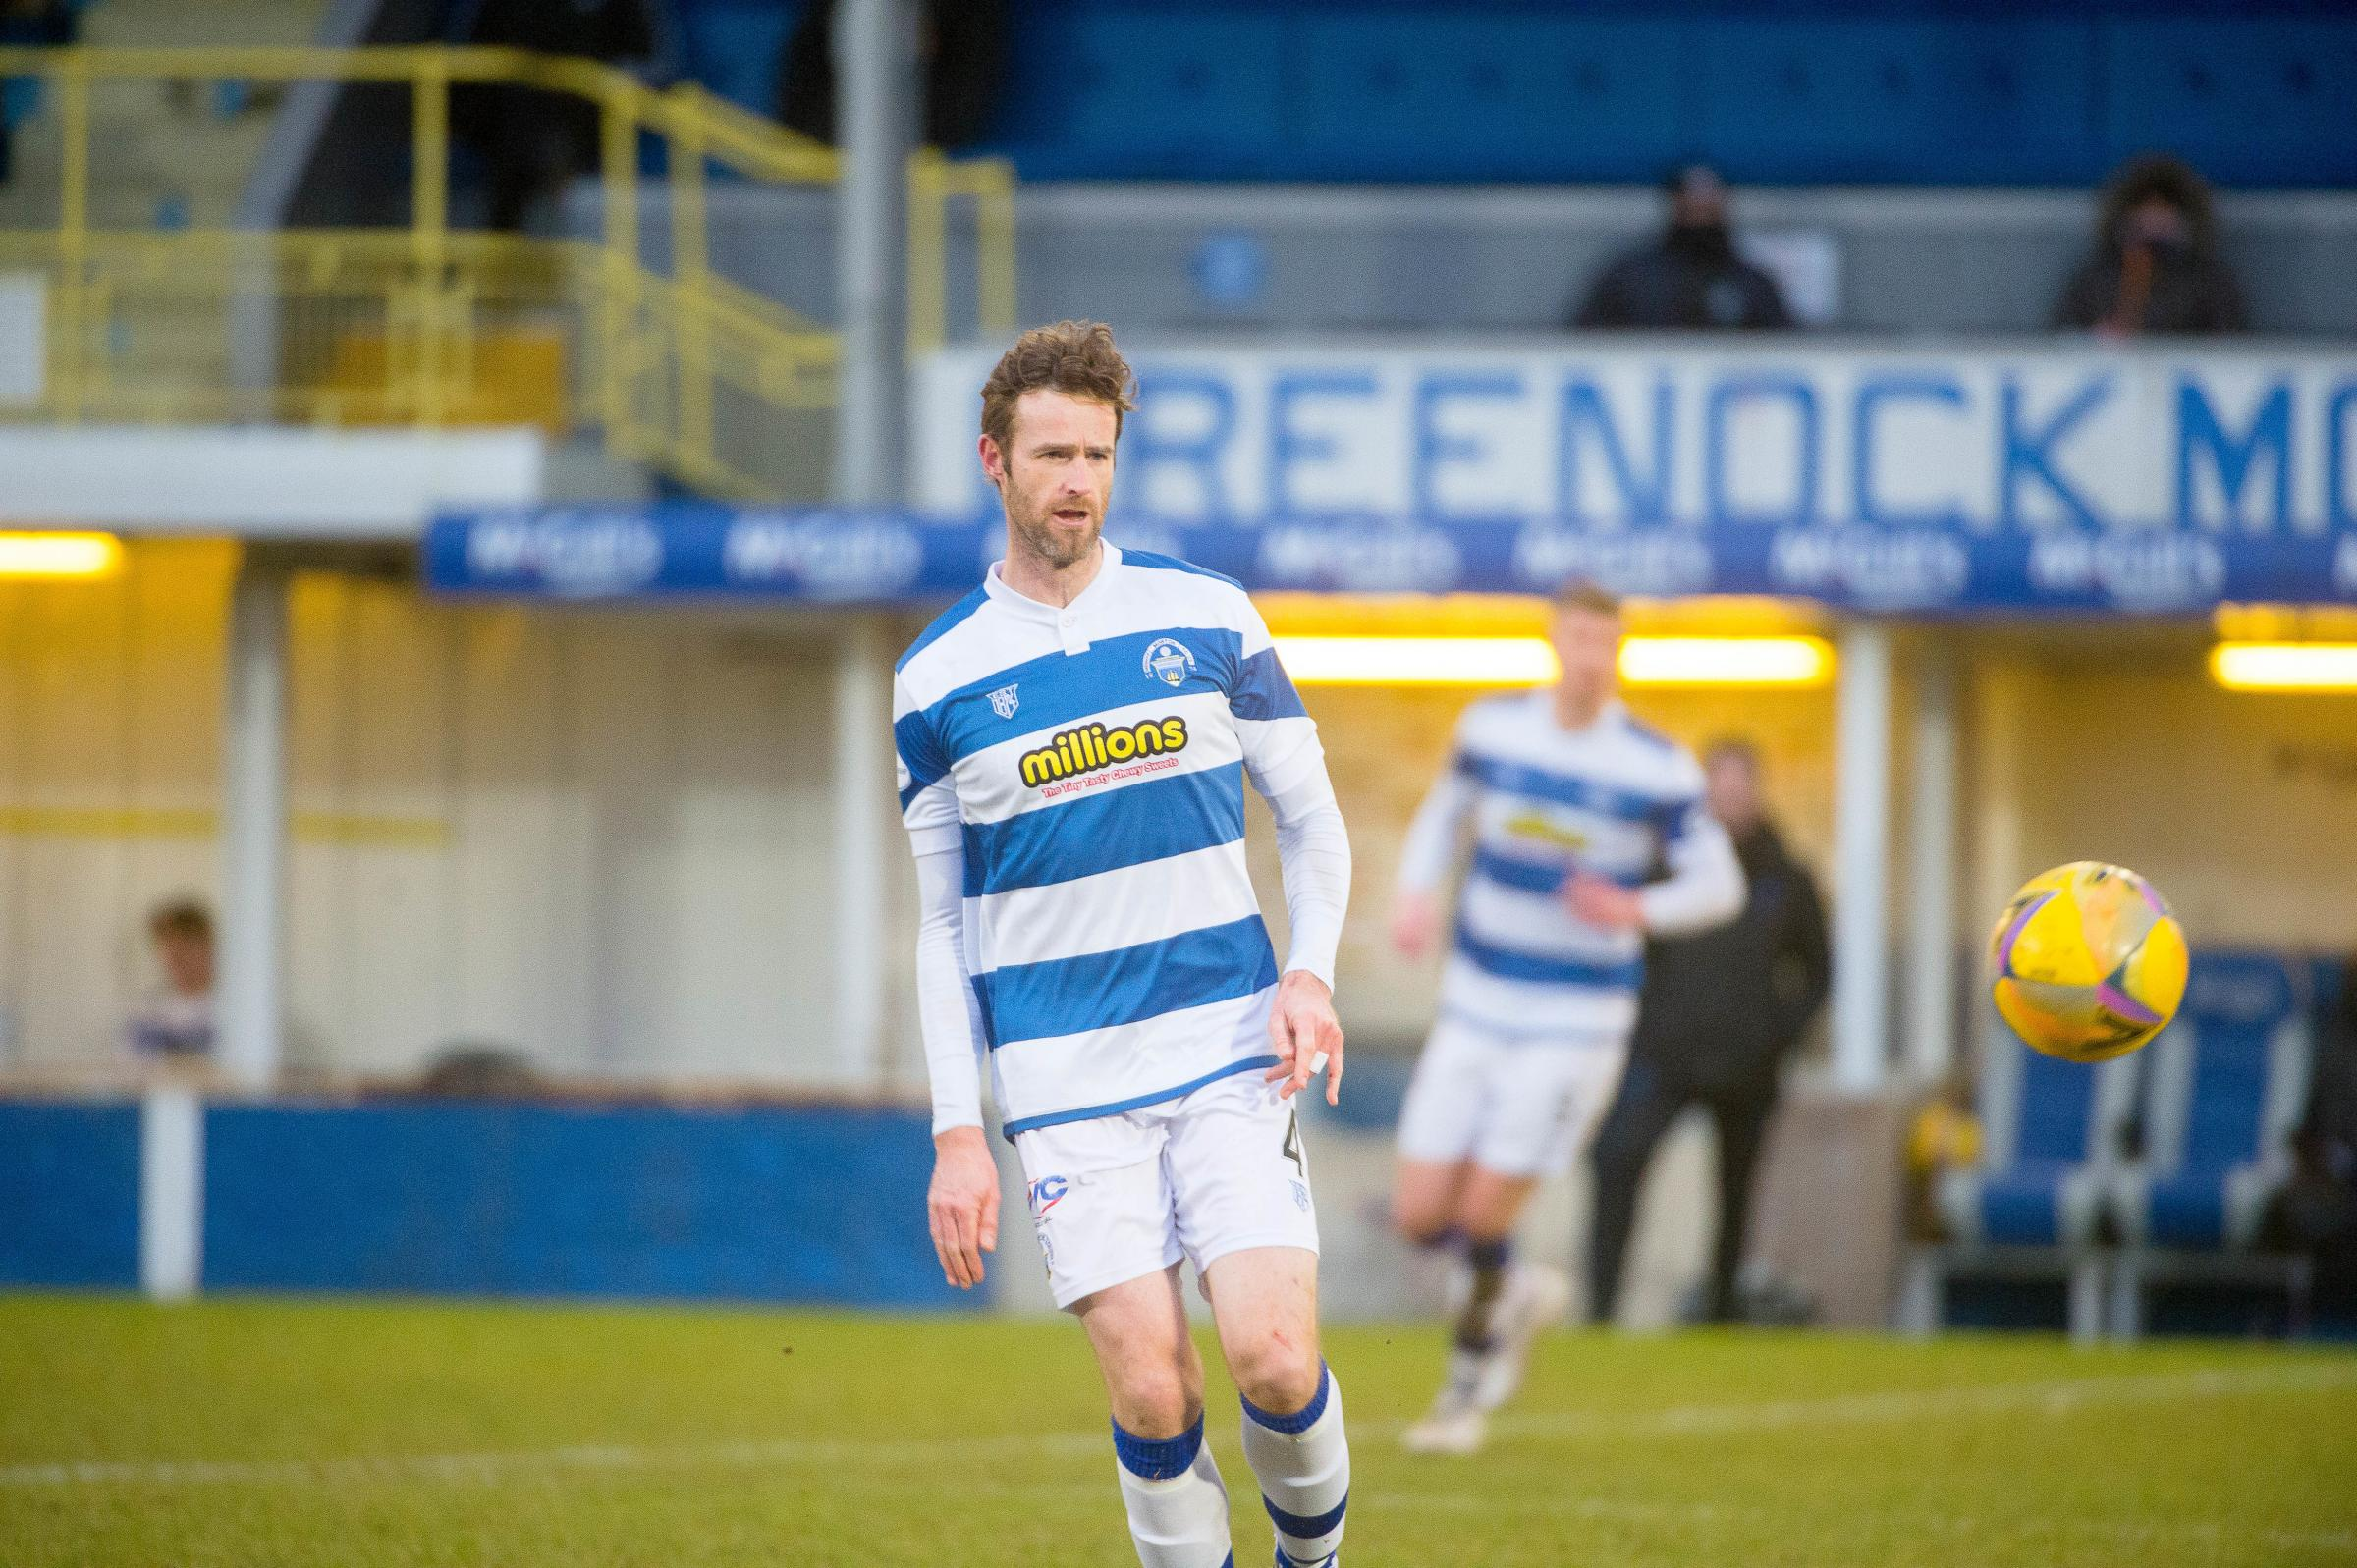 Morton defender holds hands up for losing Raith Rovers goal